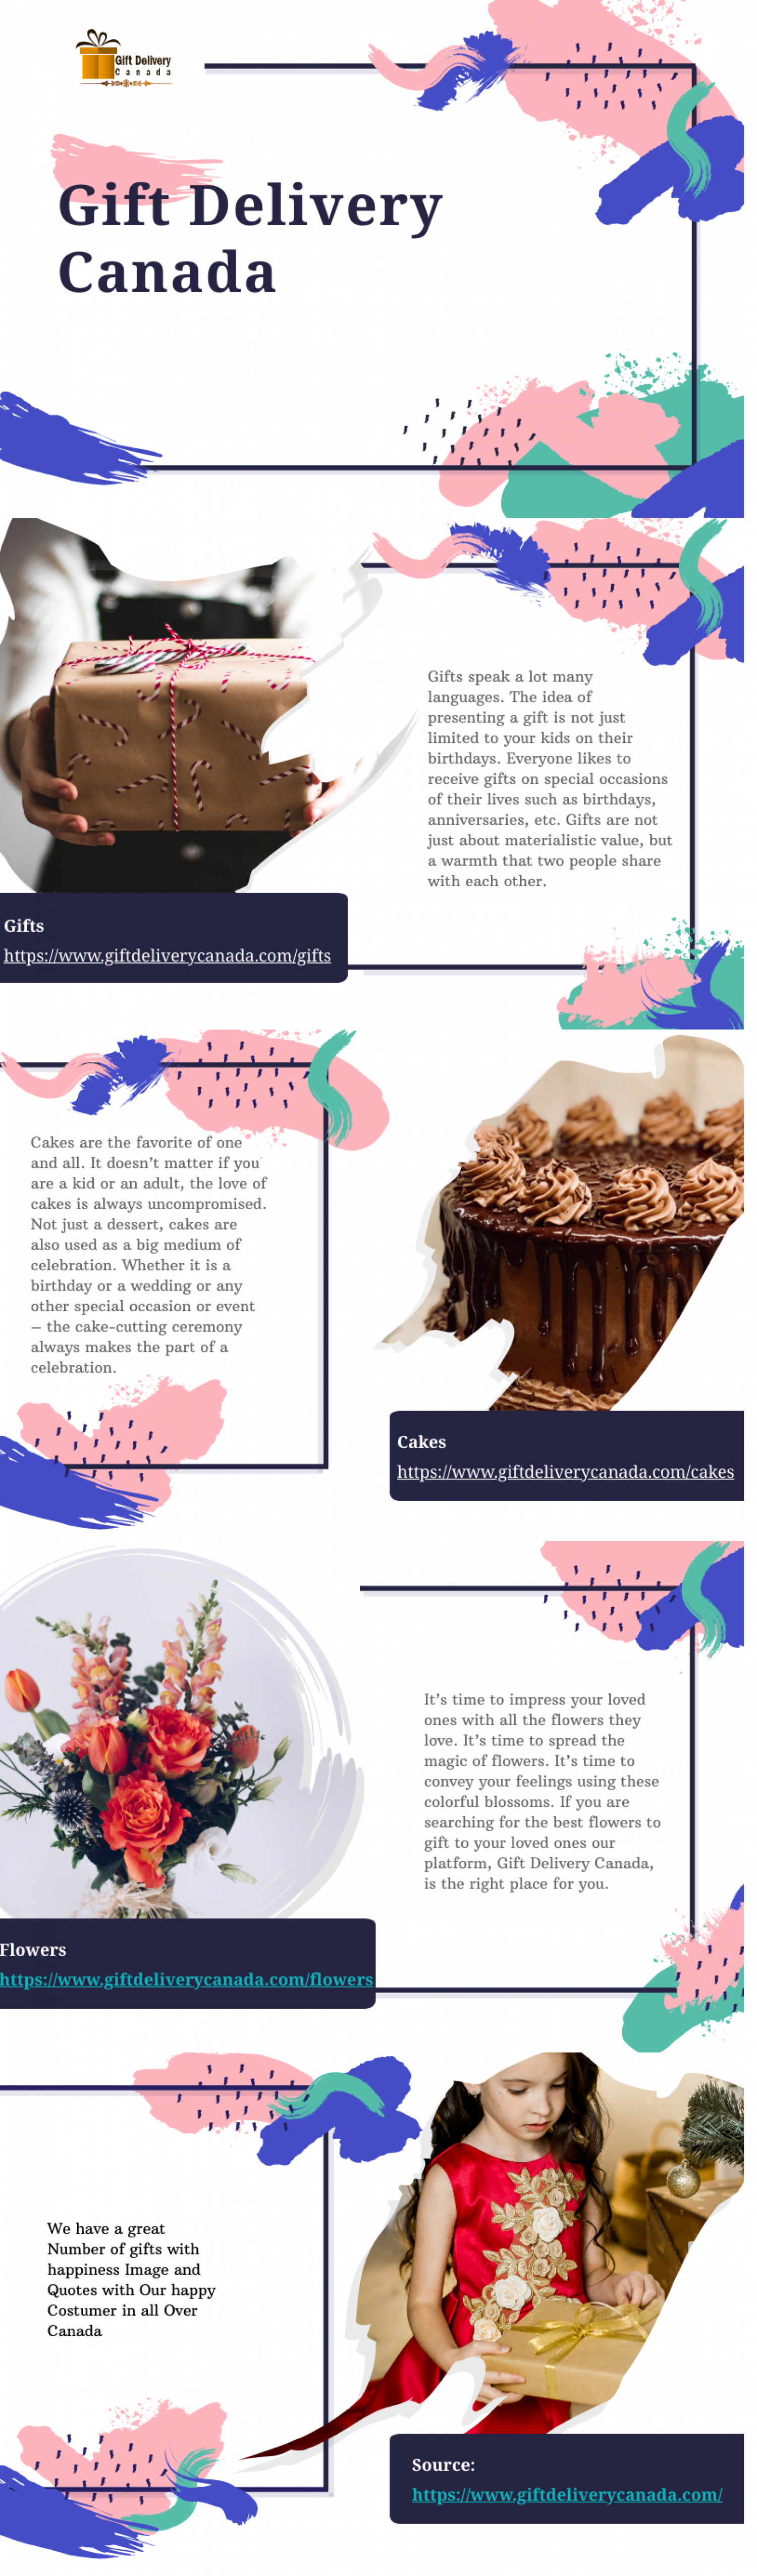 Buy Fresh Strawberry Cheesecake Online in Canada | Gift Delivery Canada Infographic